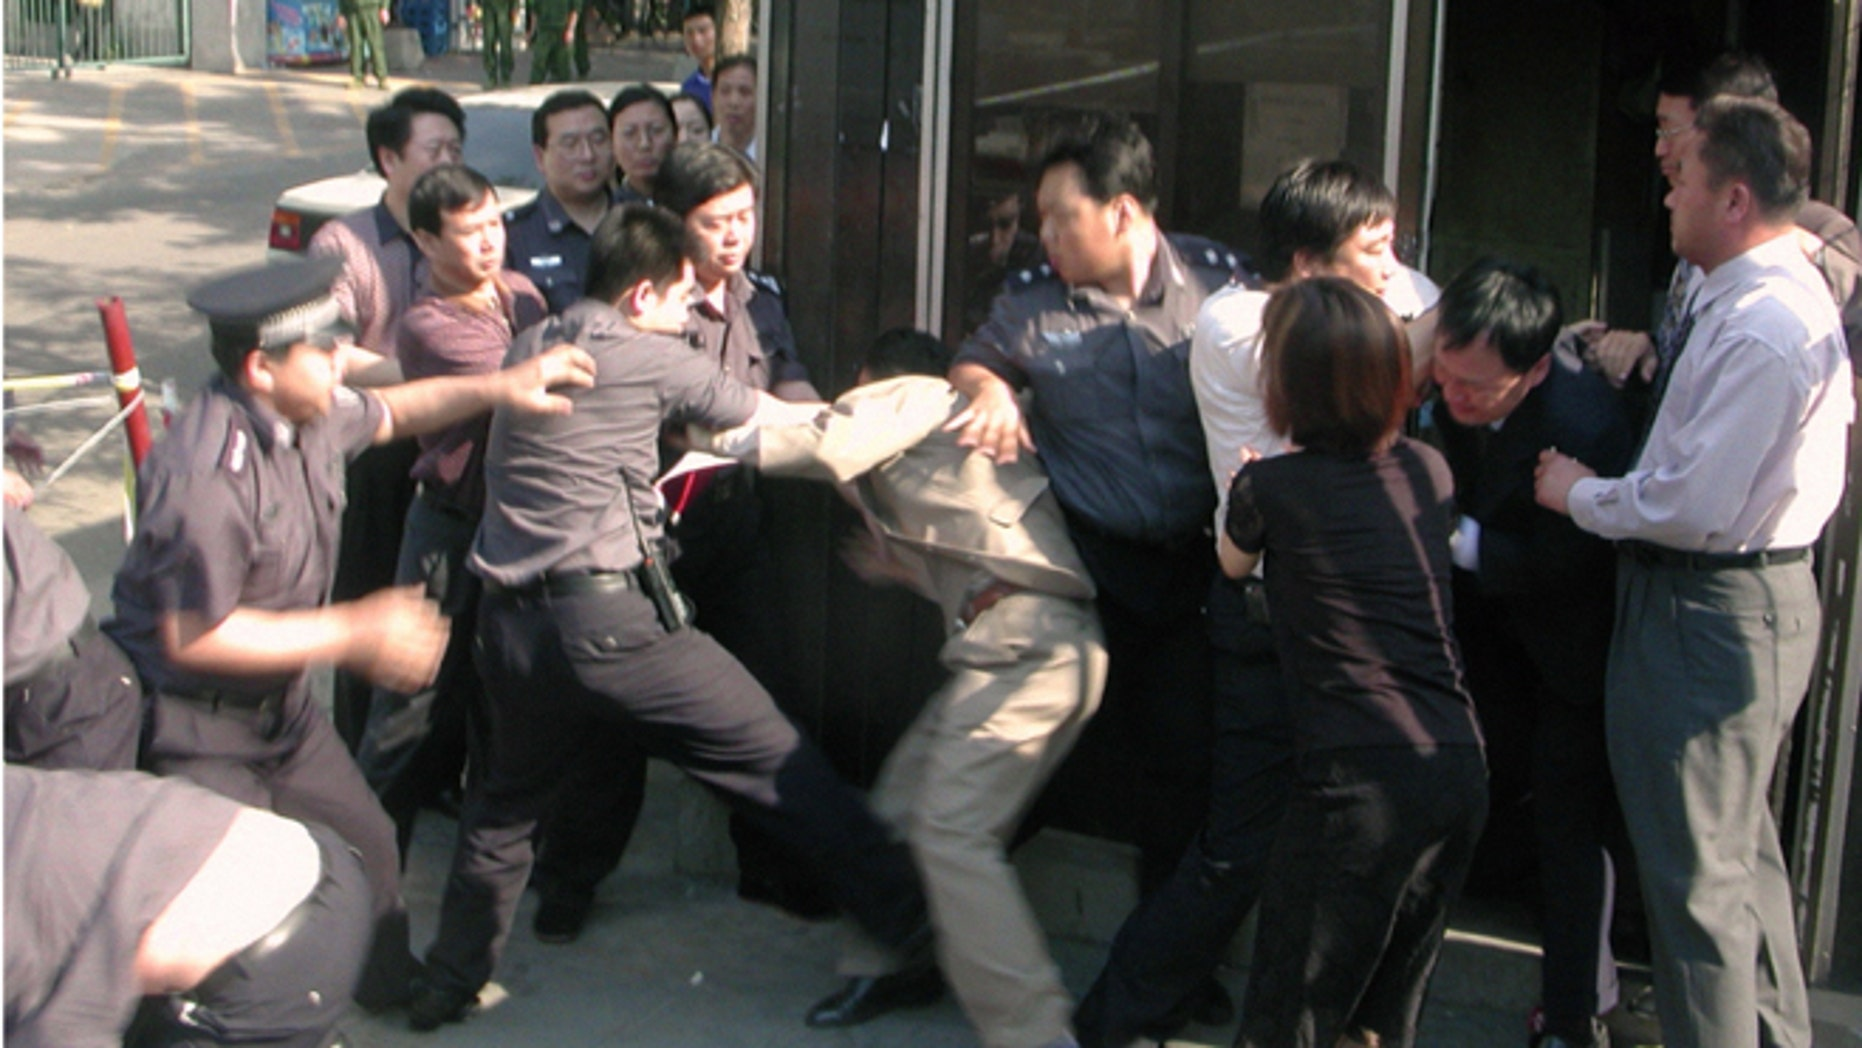 In this June 13, 2002 photo, Chinese security officers and officials at South Korean Embassy in Beijing scuffle in front of a police guard box next to the embassy's main gate as the security officers attempted to drag away a North Korean asylum seeker. Two North Koreans entered the embassy on June 13, 2002 amid a spate of asylum bids by North Koreans, but Chinese guards dragged an asylum-seeker from the visa office after punching and kicking diplomats who tried to block them.